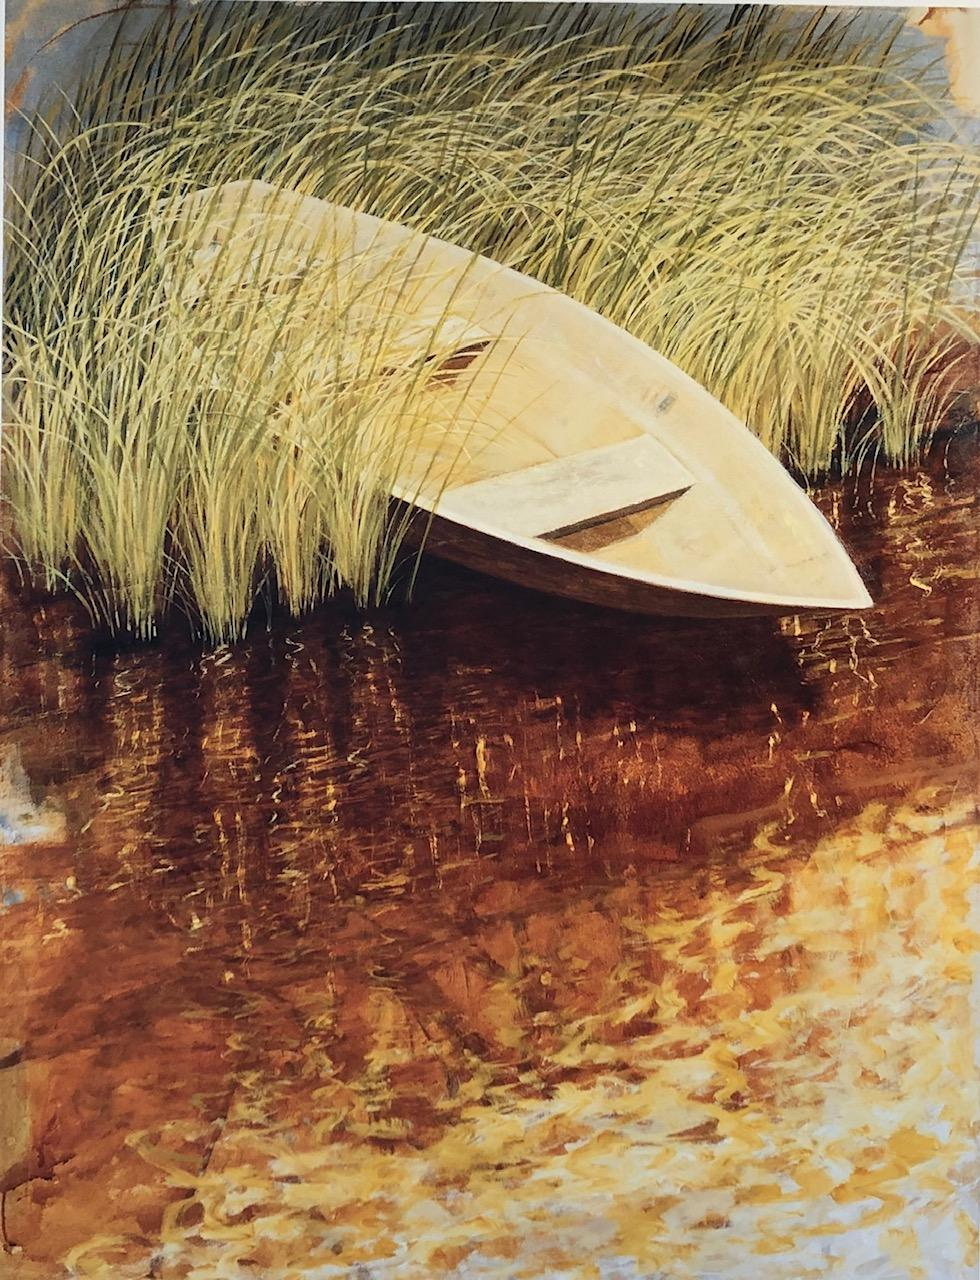 """""""Waterfields Water's Edge"""" Small row boat in the reeds sienna and yellow water."""